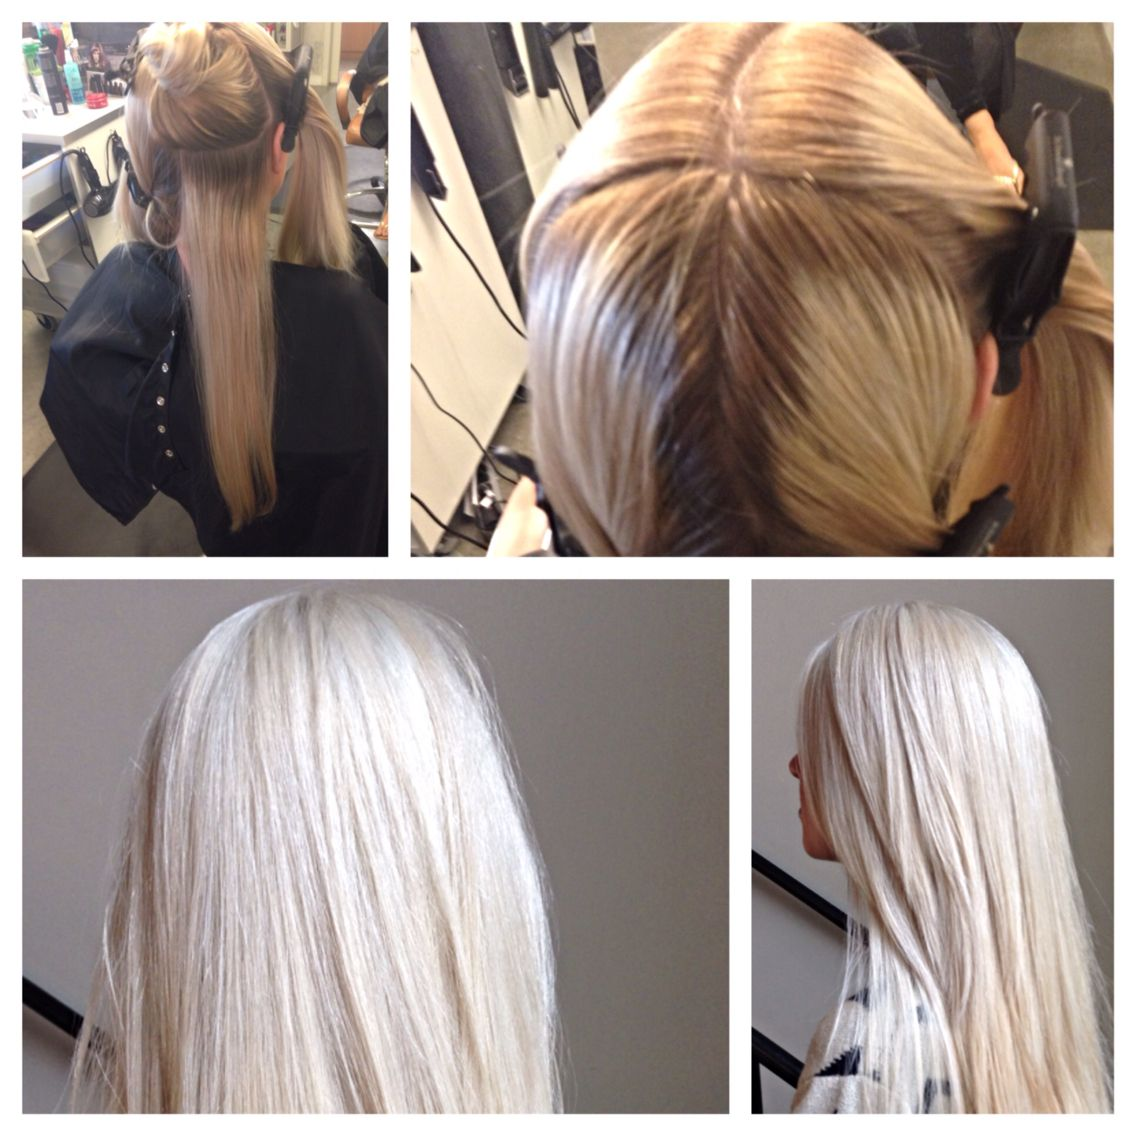 From brassy and flat to platinum using blondme by schwarzkopf from brassy and flat to platinum using blondme by schwarzkopf professional by heather tufton rock nvjuhfo Image collections